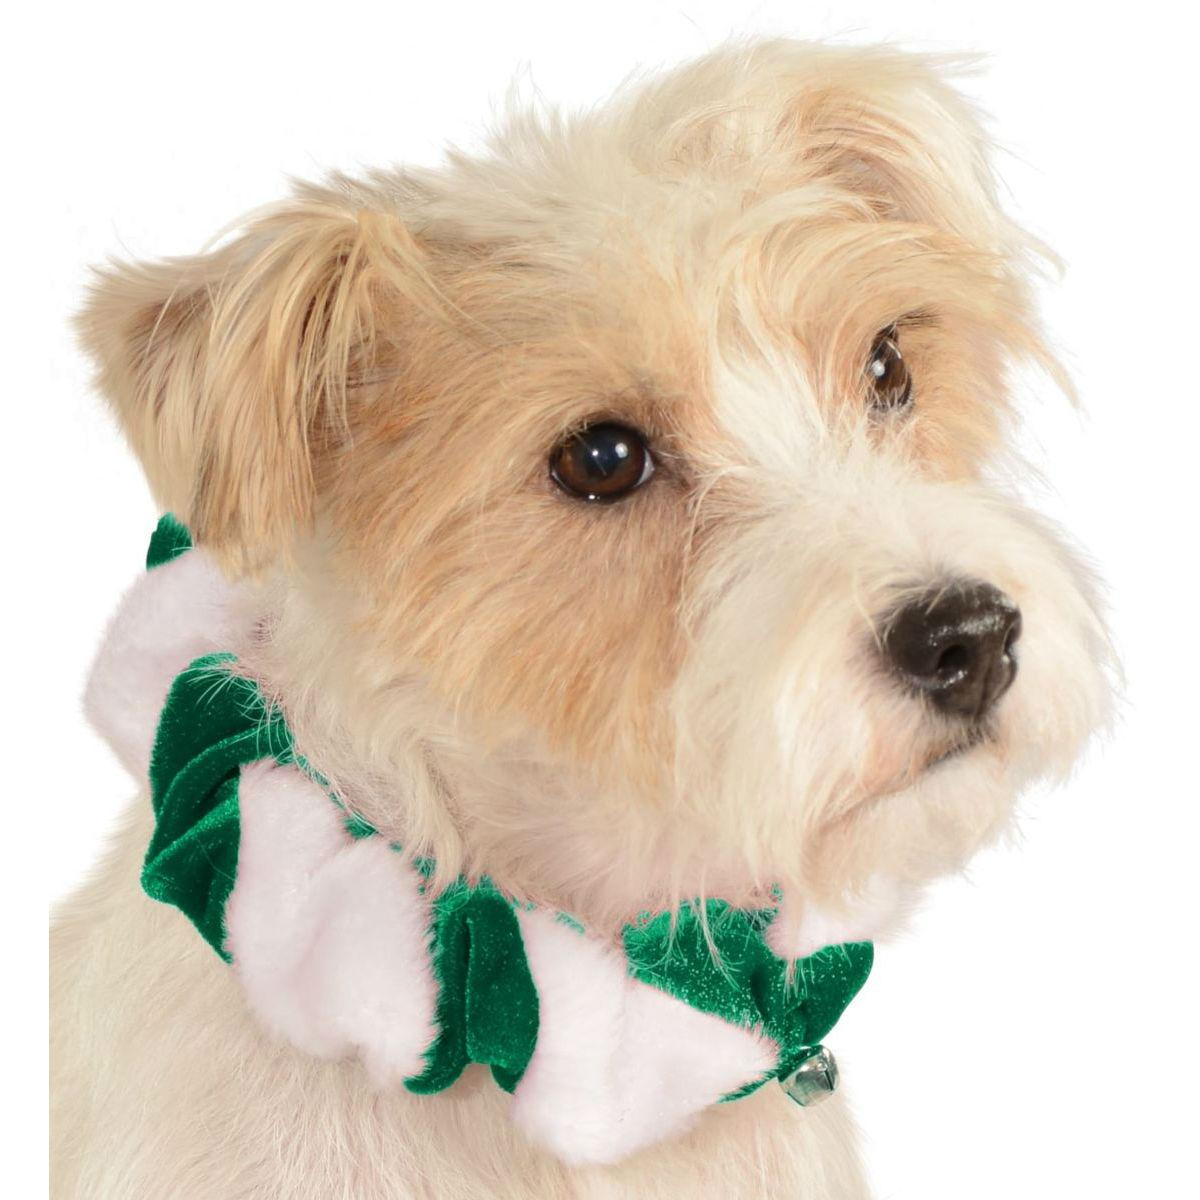 Rubies Candy Cane Dog and Cat Scrunchie - Green